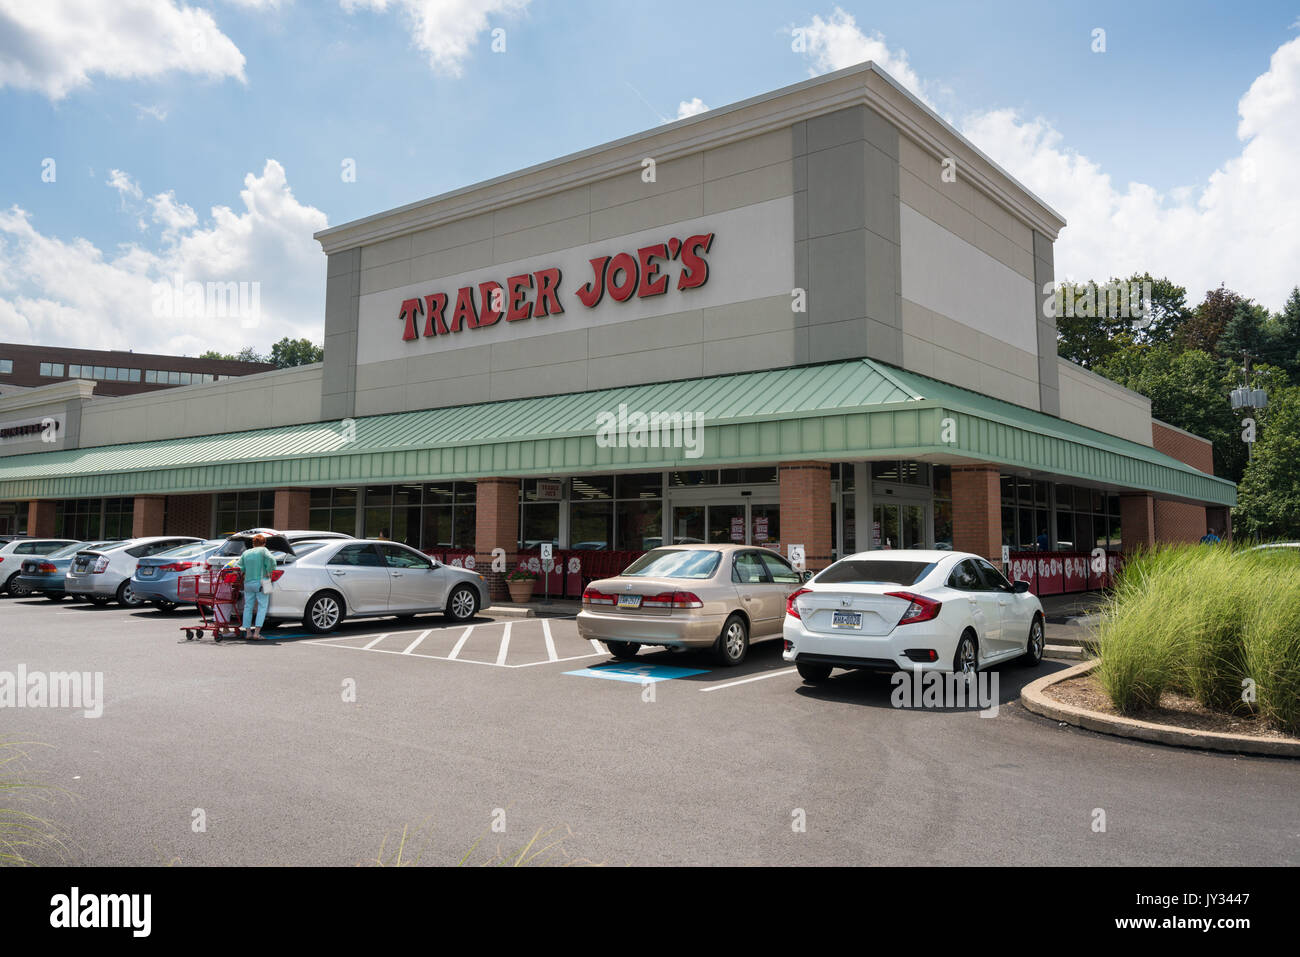 Trader joe's clothing store